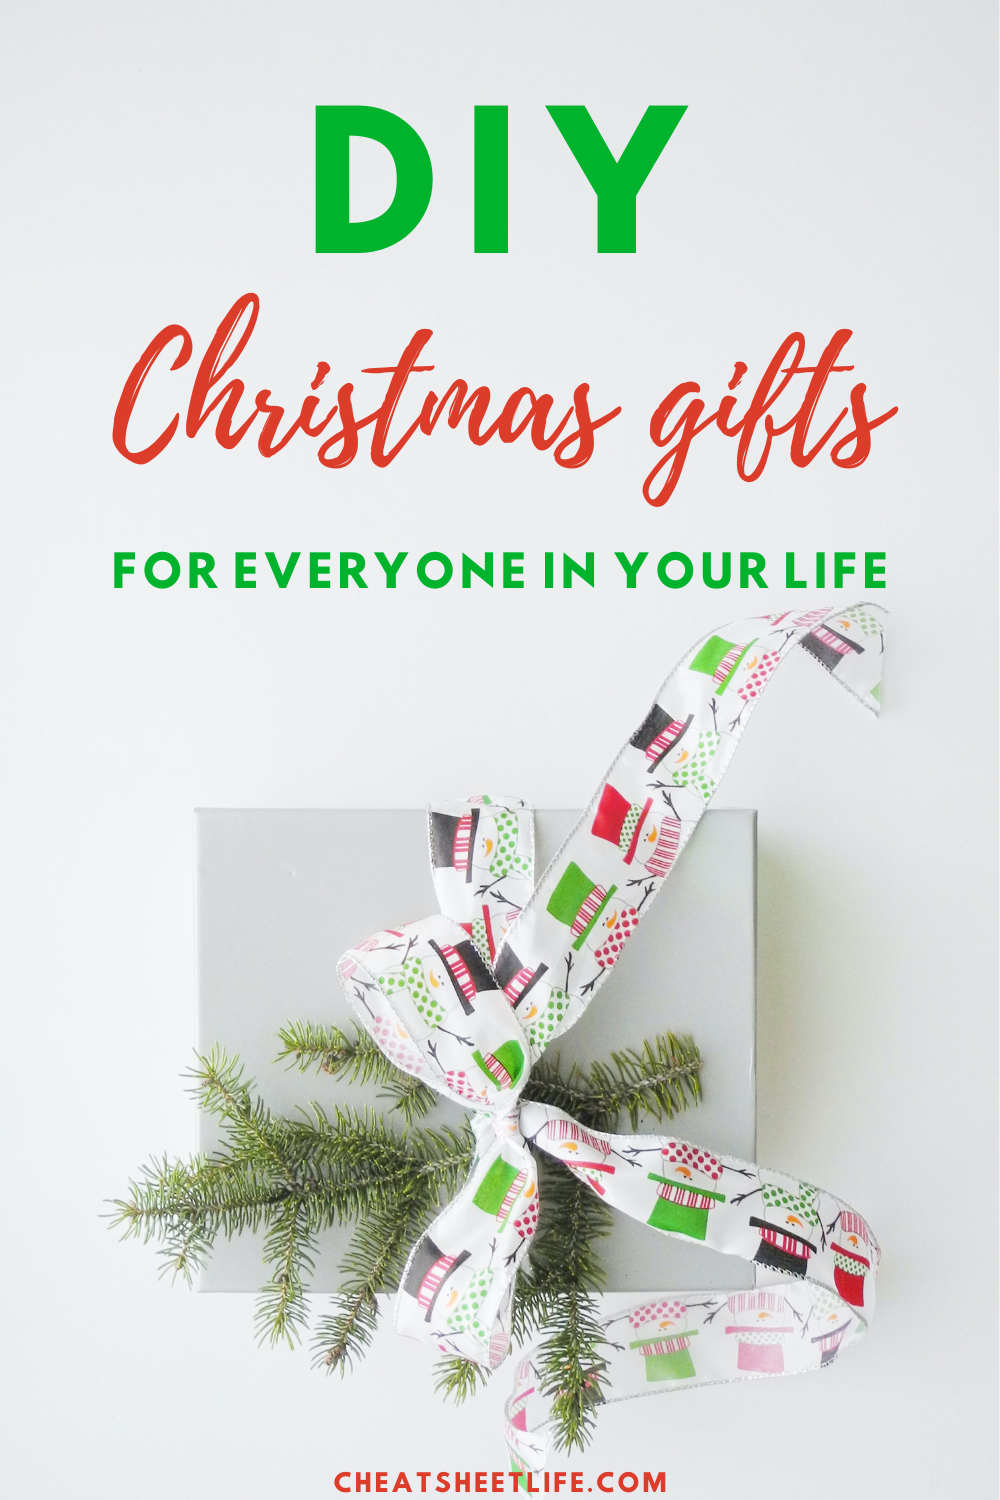 From elaborate to simple, this list has it all, and we are positive you will find the inspiration you've been looking for. #giftguide #wishlistideas #christmasgiftideas #christmas #christmasgifts #christmascrafts #diychristmasgifts #diychristmascrafts